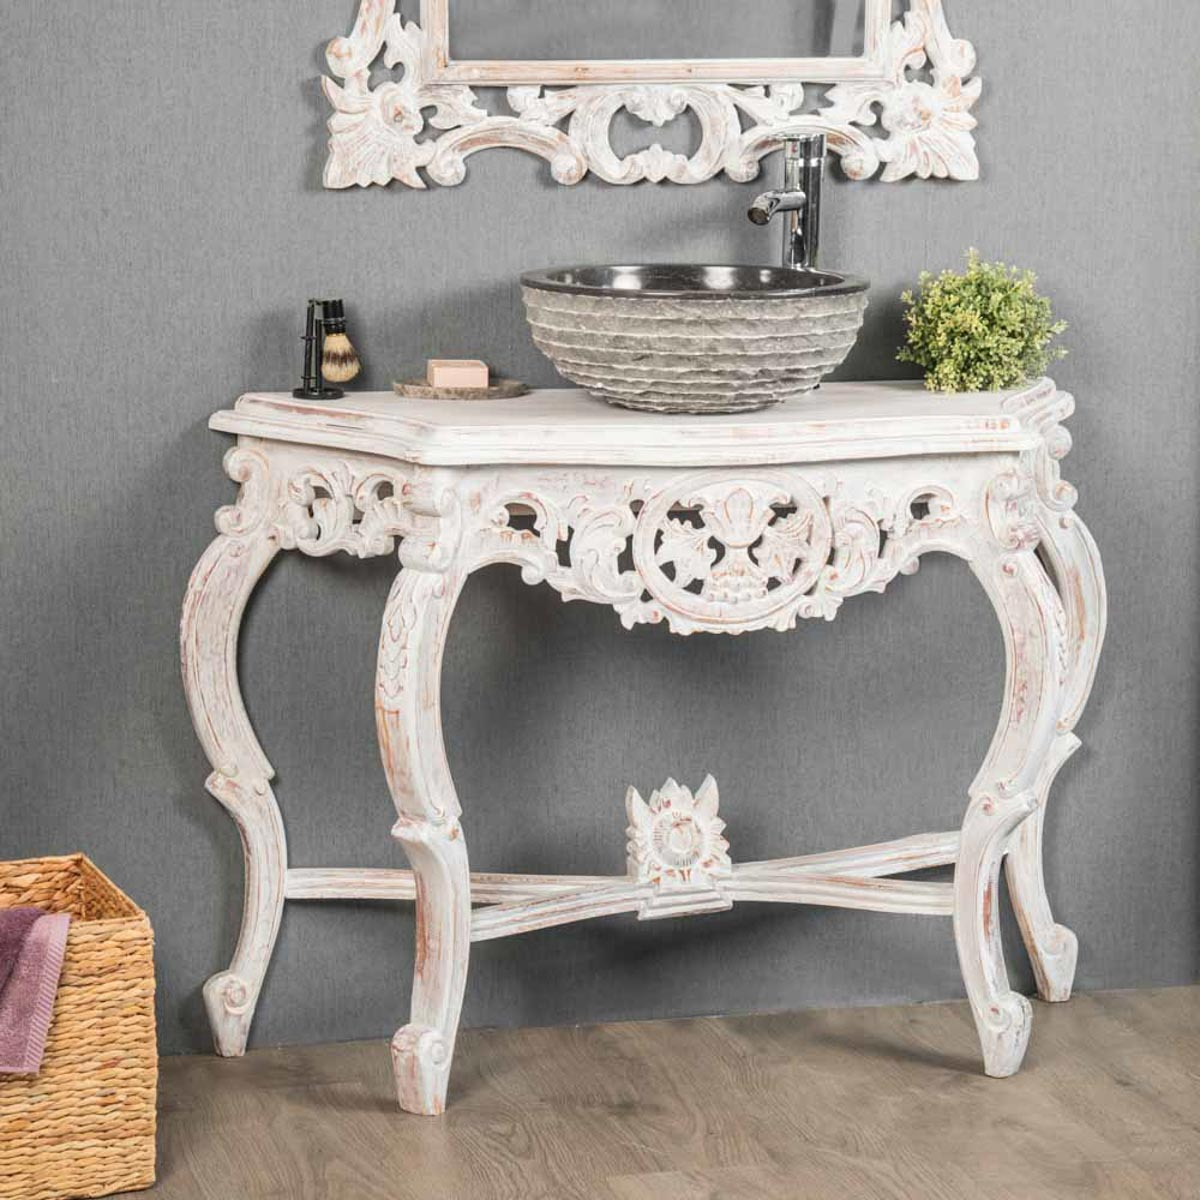 meuble sous vasque simple vasque en bois teck massif baroque blanc l 100 cm. Black Bedroom Furniture Sets. Home Design Ideas